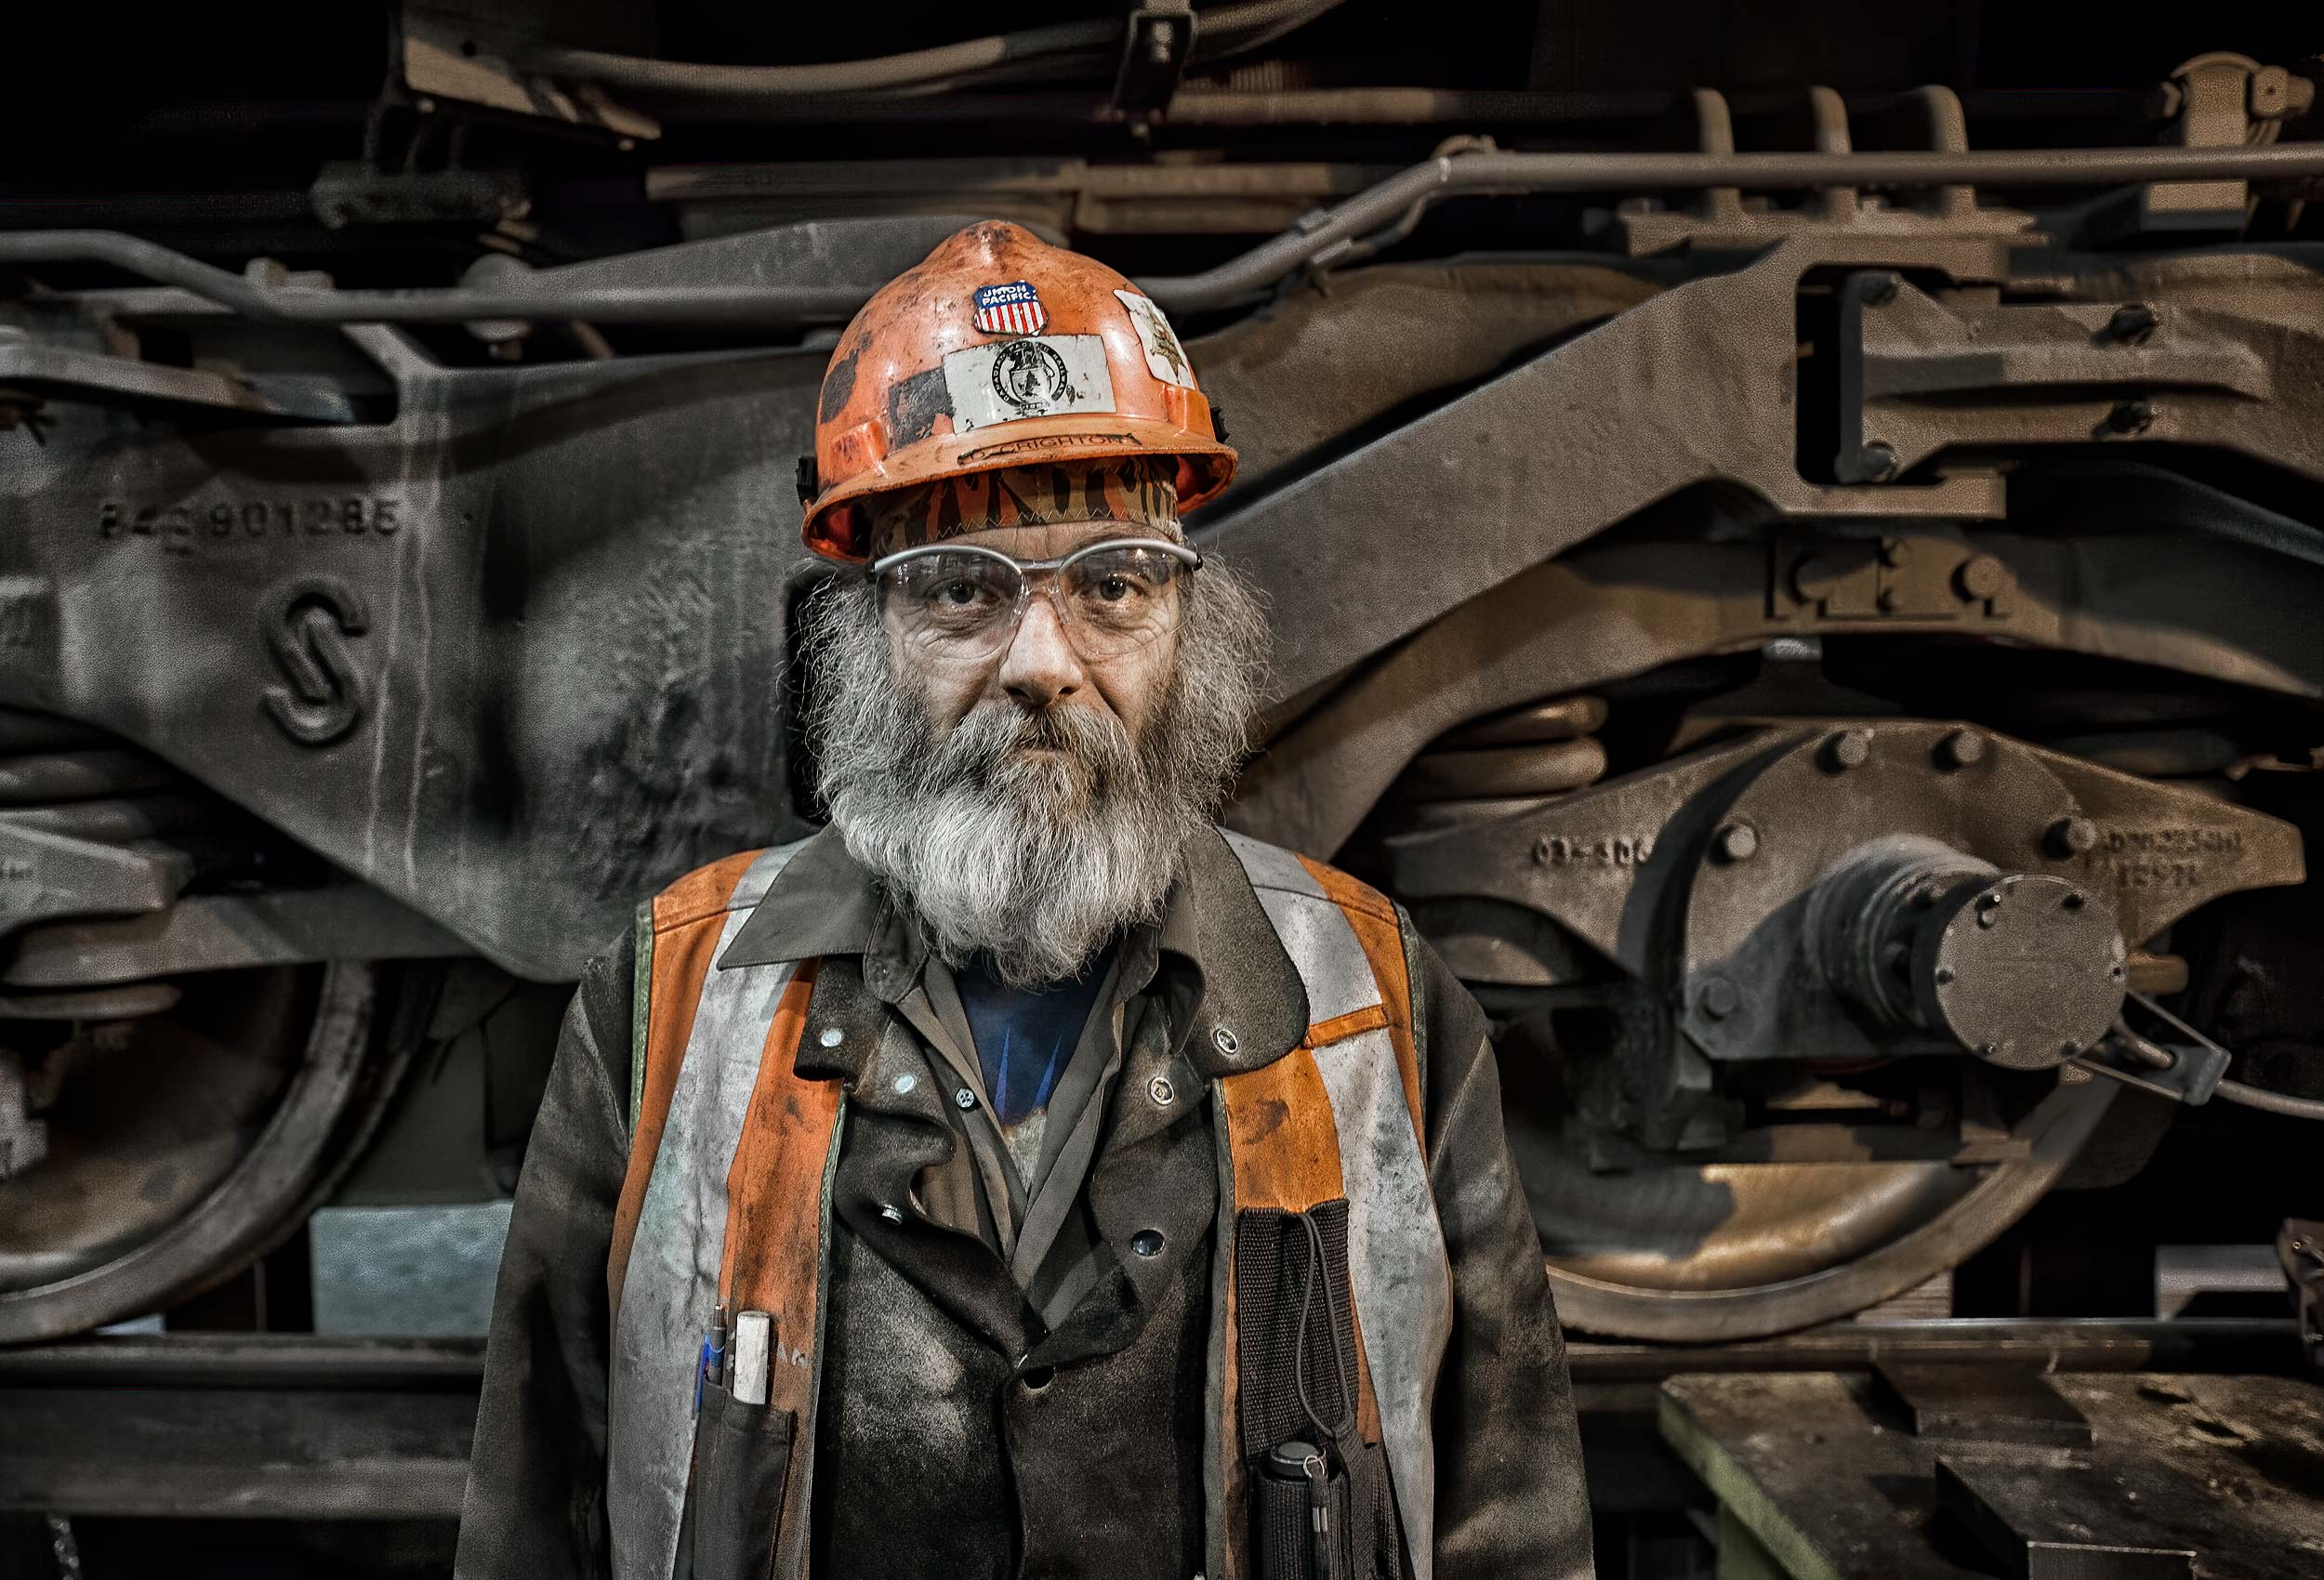 an-industrial-portrait-of-a-cp-rail-train-engineer-at-the-calgary-ogden-dale-repair-and-overhaul-facility